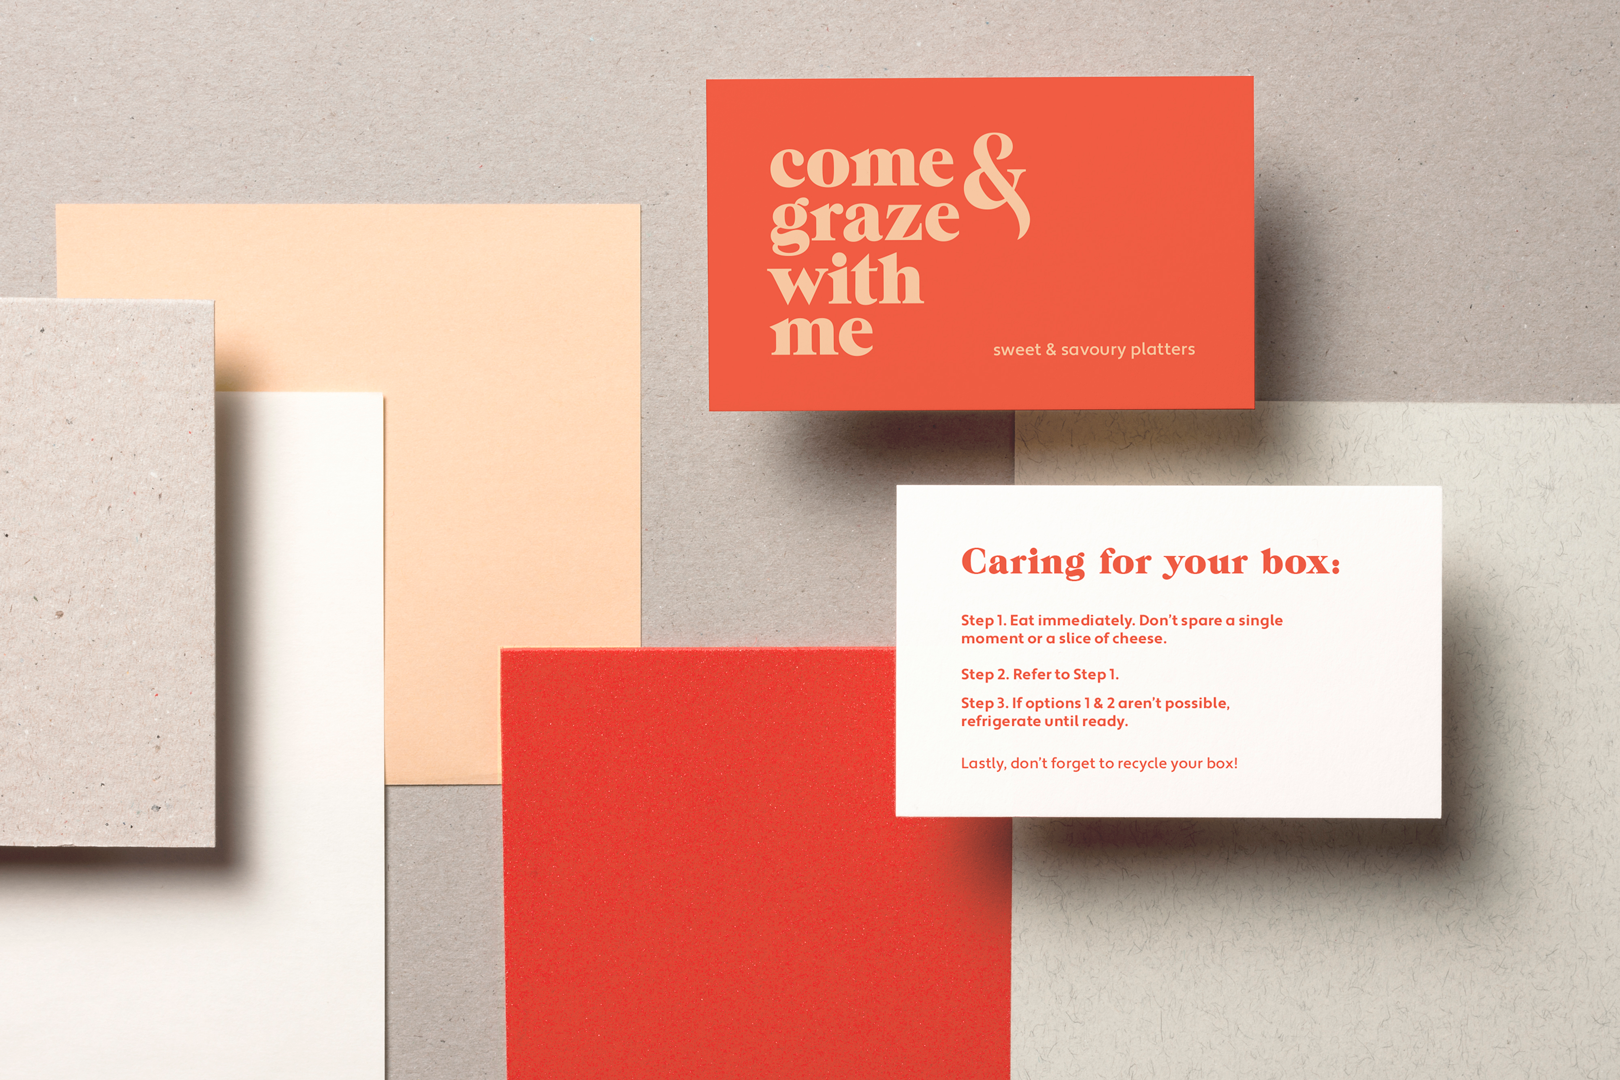 Come & Graze With Me care cards